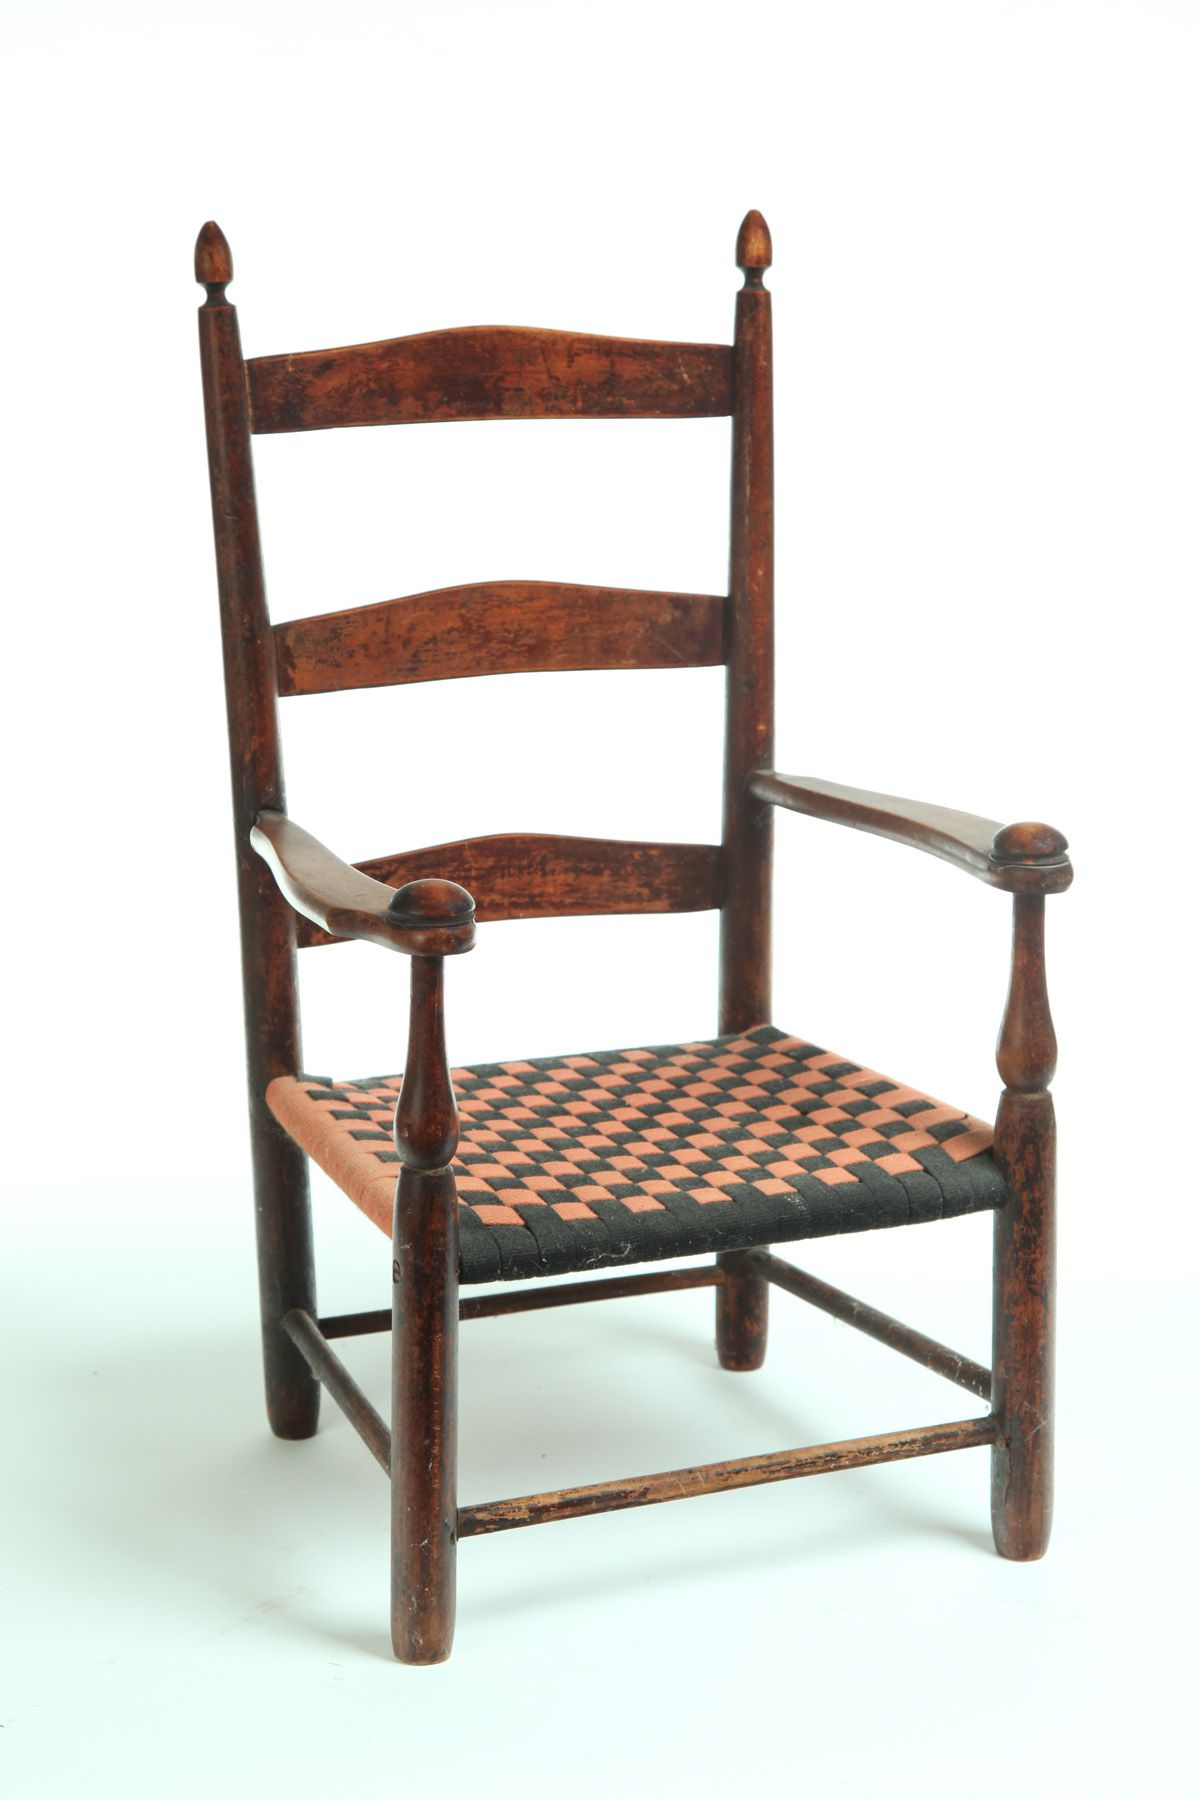 Antique interior · Shaker Child's Chair ... - Shaker Child's Chair American 2nd Half 19th Century Ladderback With